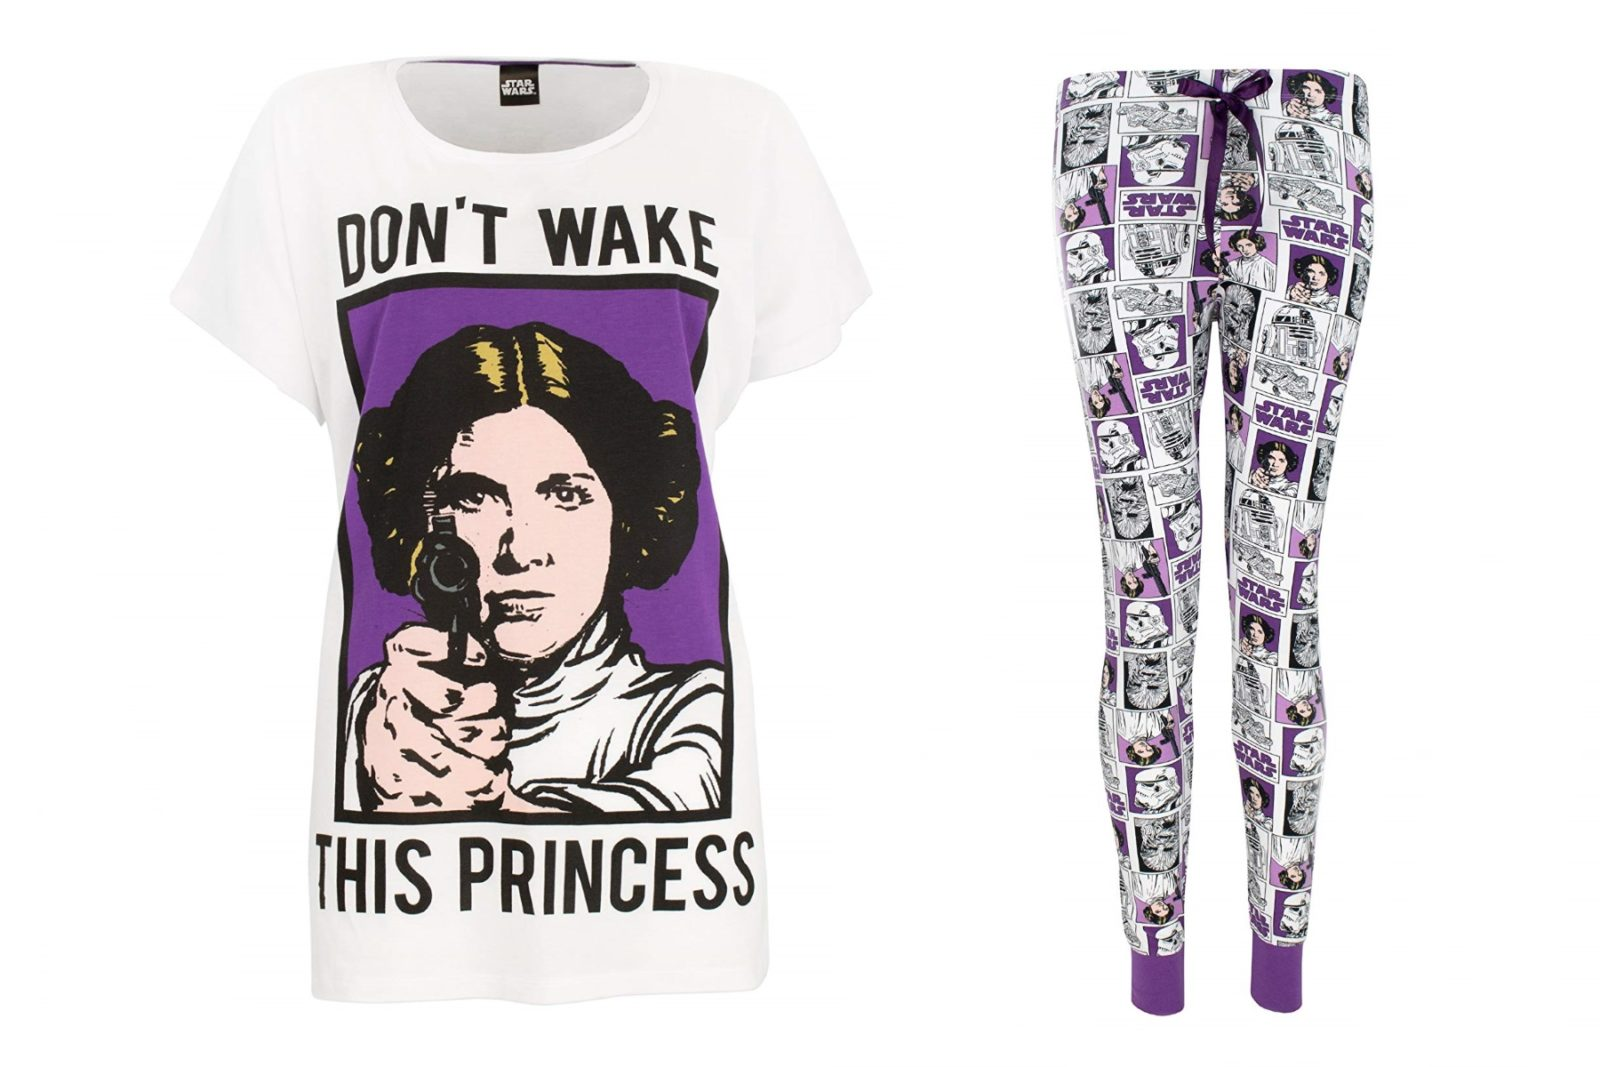 Women's Princess Leia Sleepwear Set on Amazon